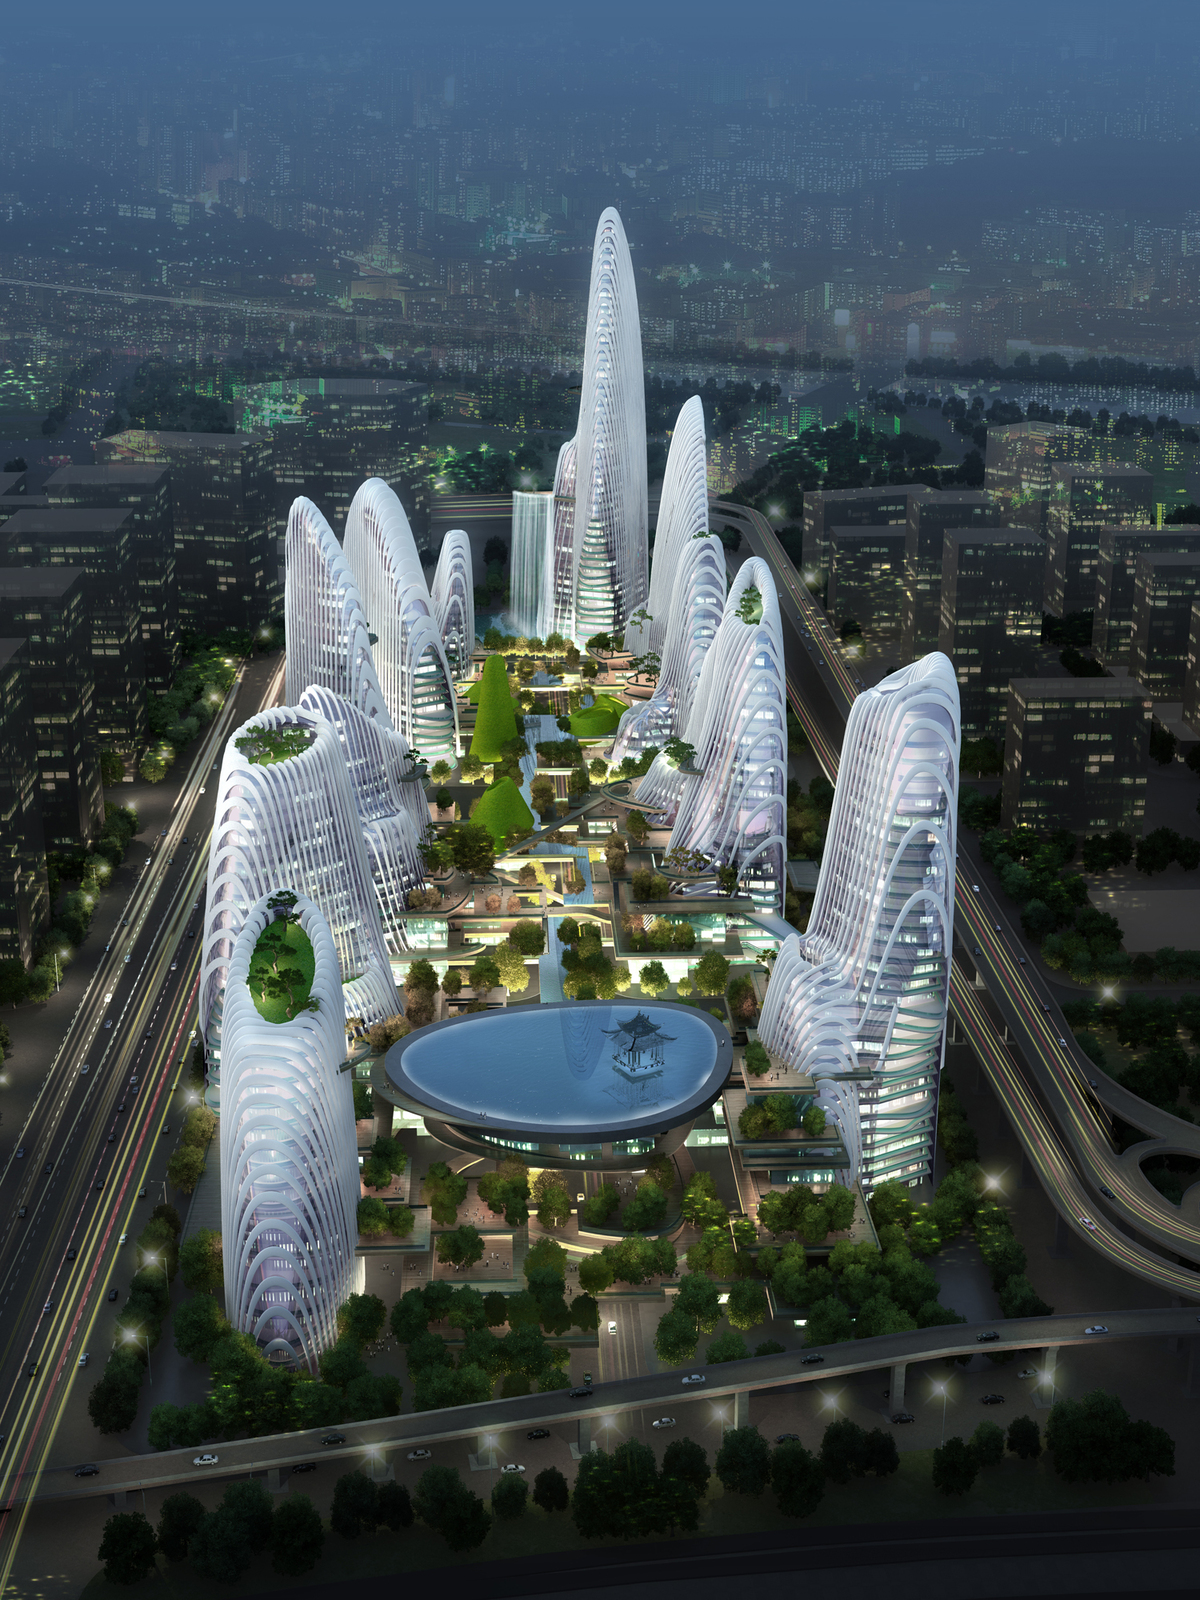 Nanjing Zendai Himalayas Center, courtesy of MAD Architects.